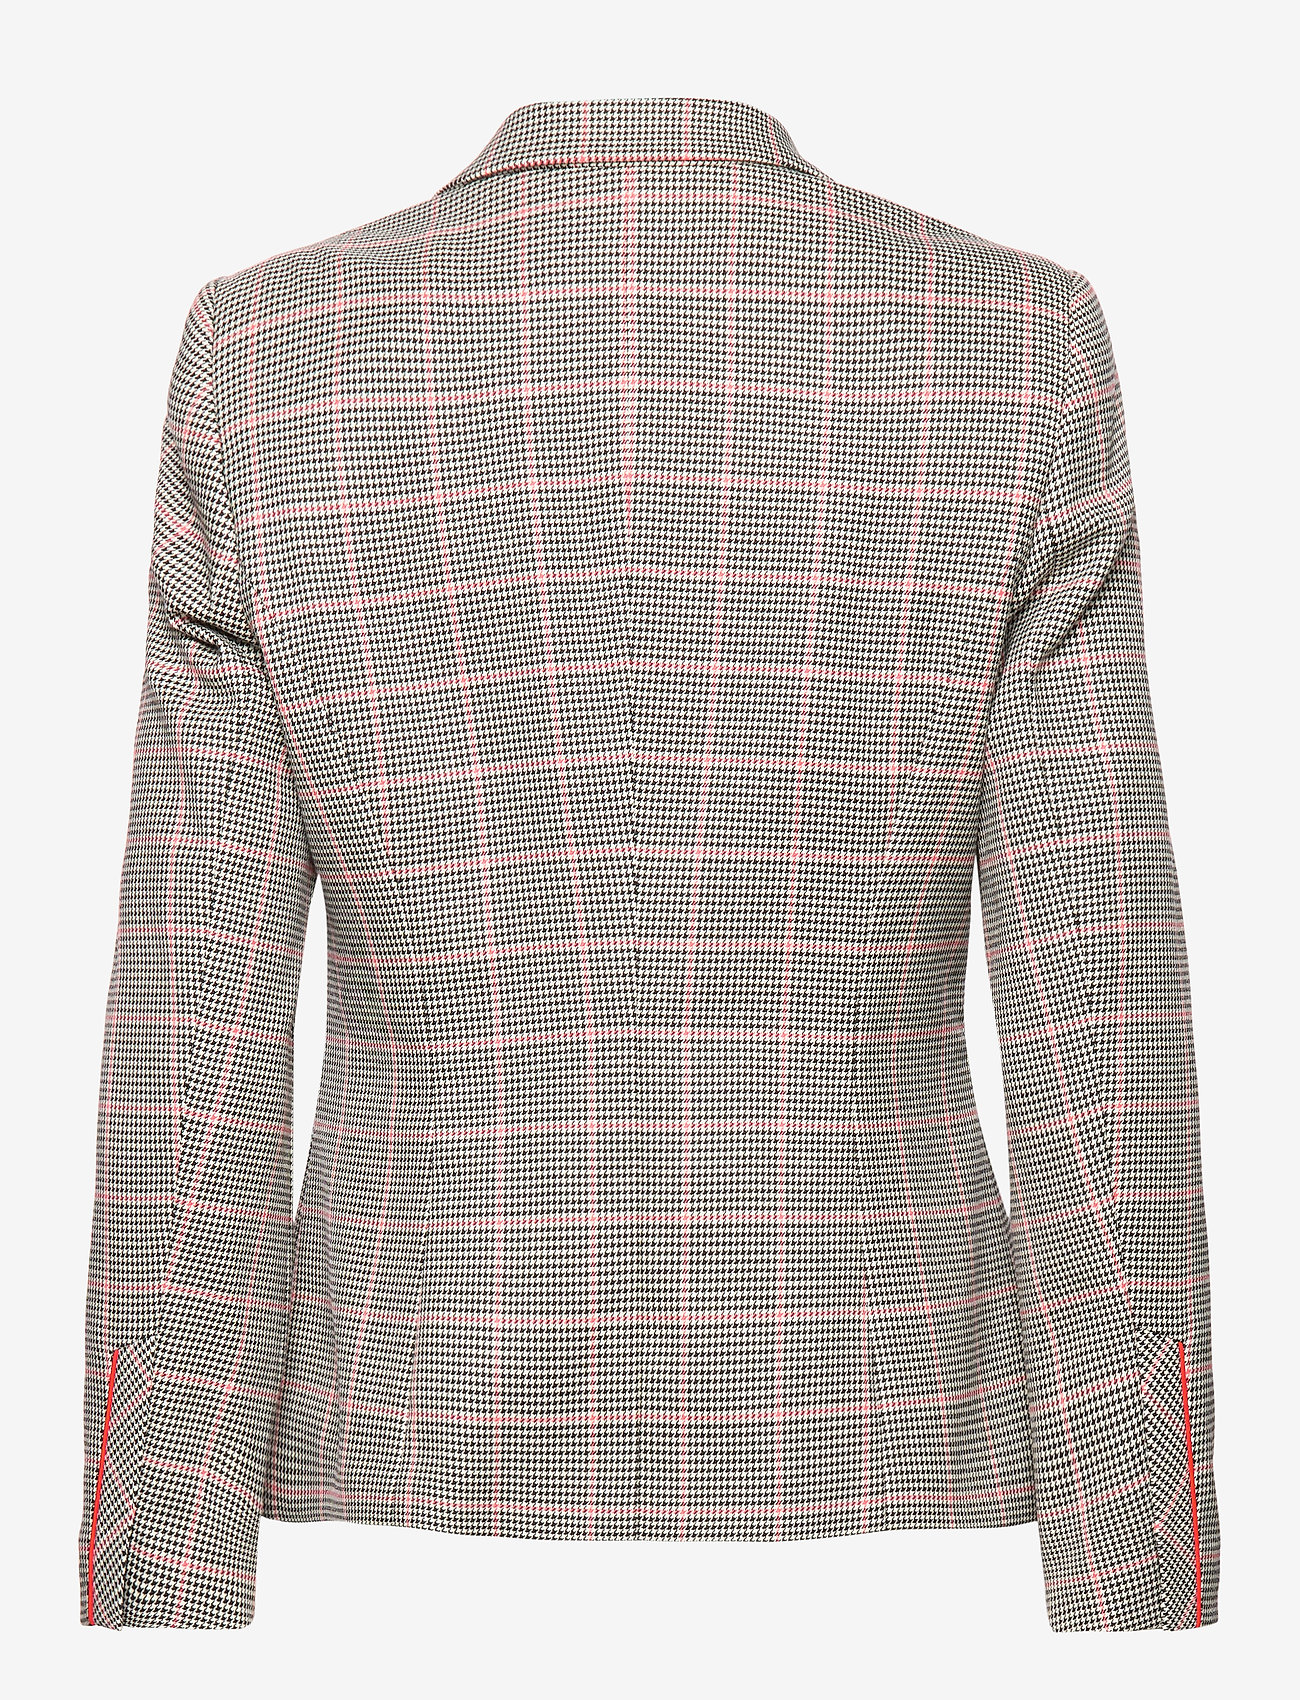 Blazer Long-sleeve (Blackoffwhitespicedcoral Check) (1299.35 kr) - Gerry Weber